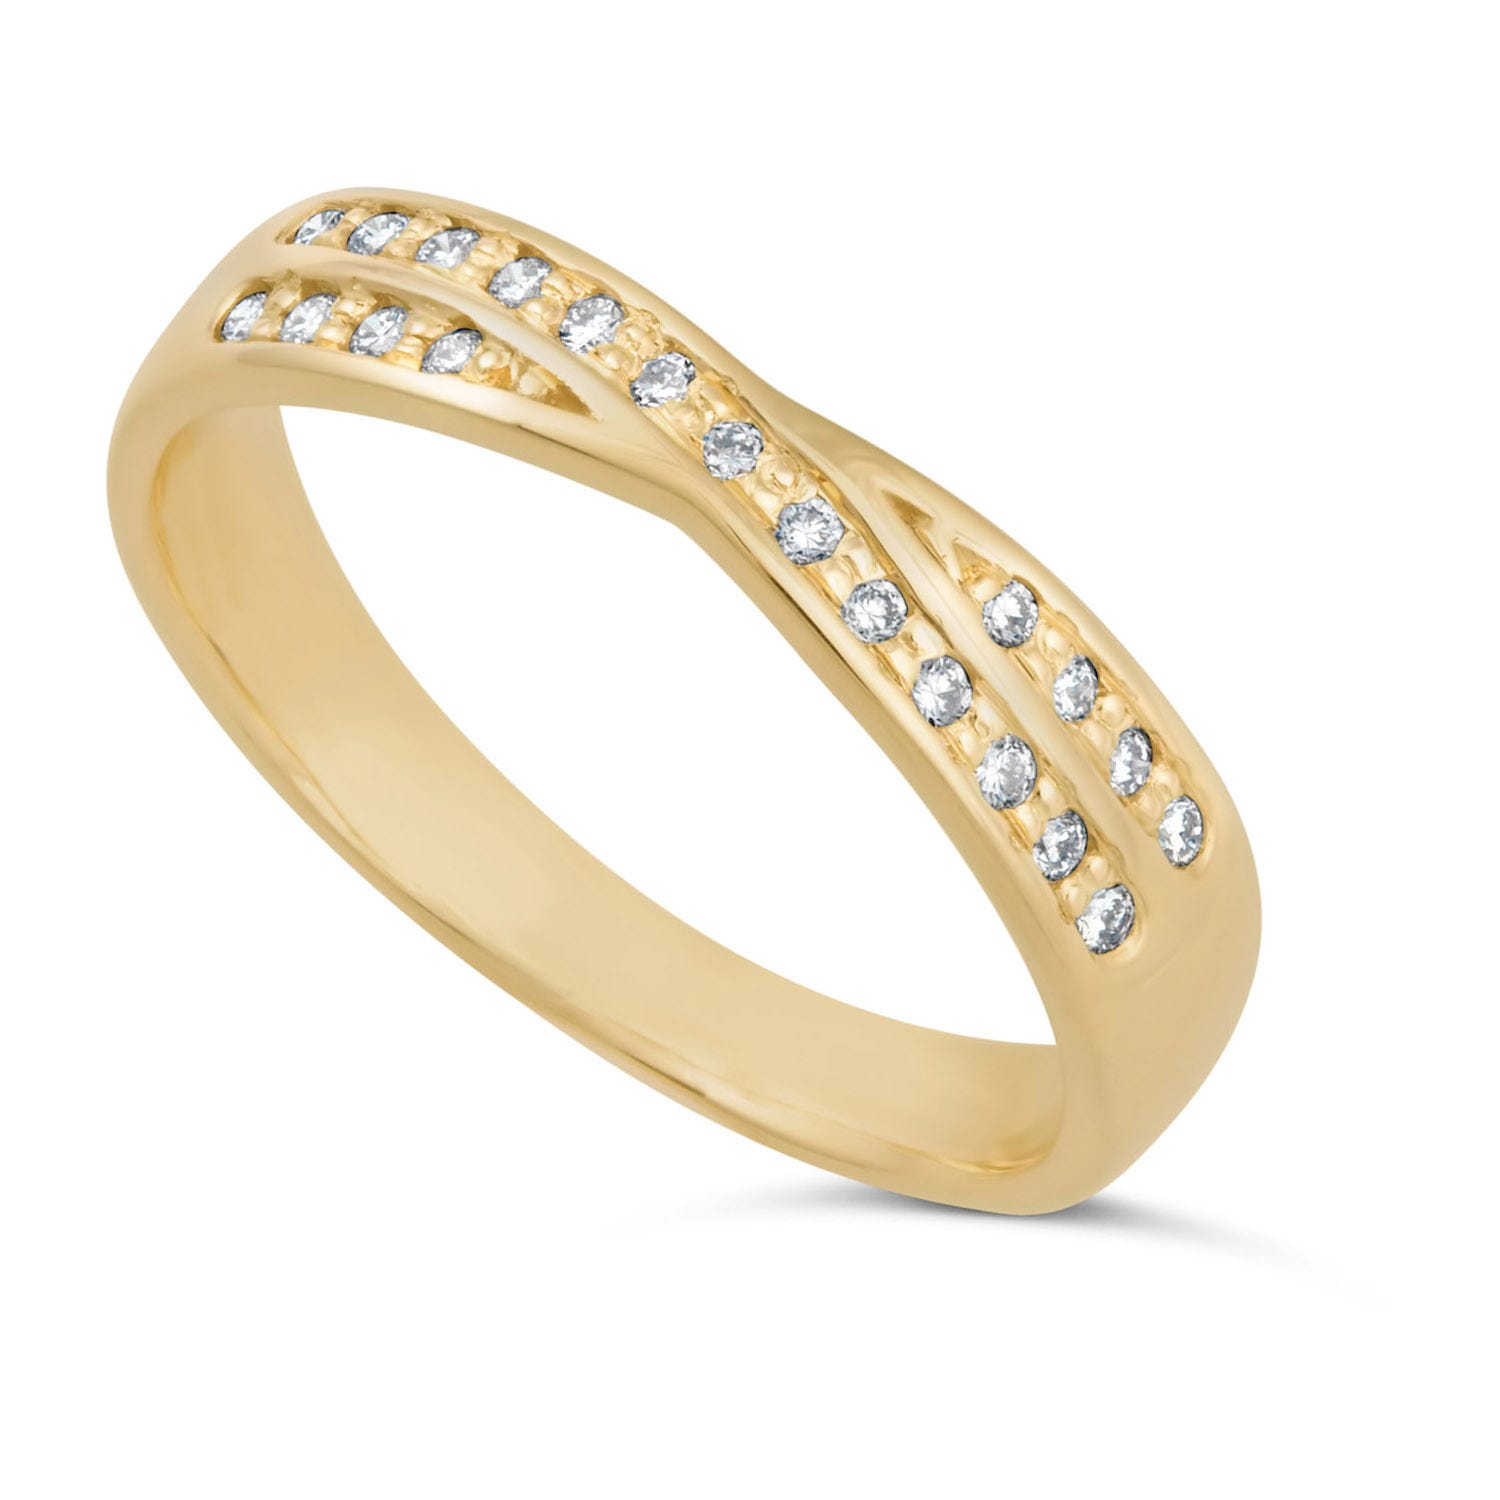 Ladies' 9ct gold diamond crossover wedding ring